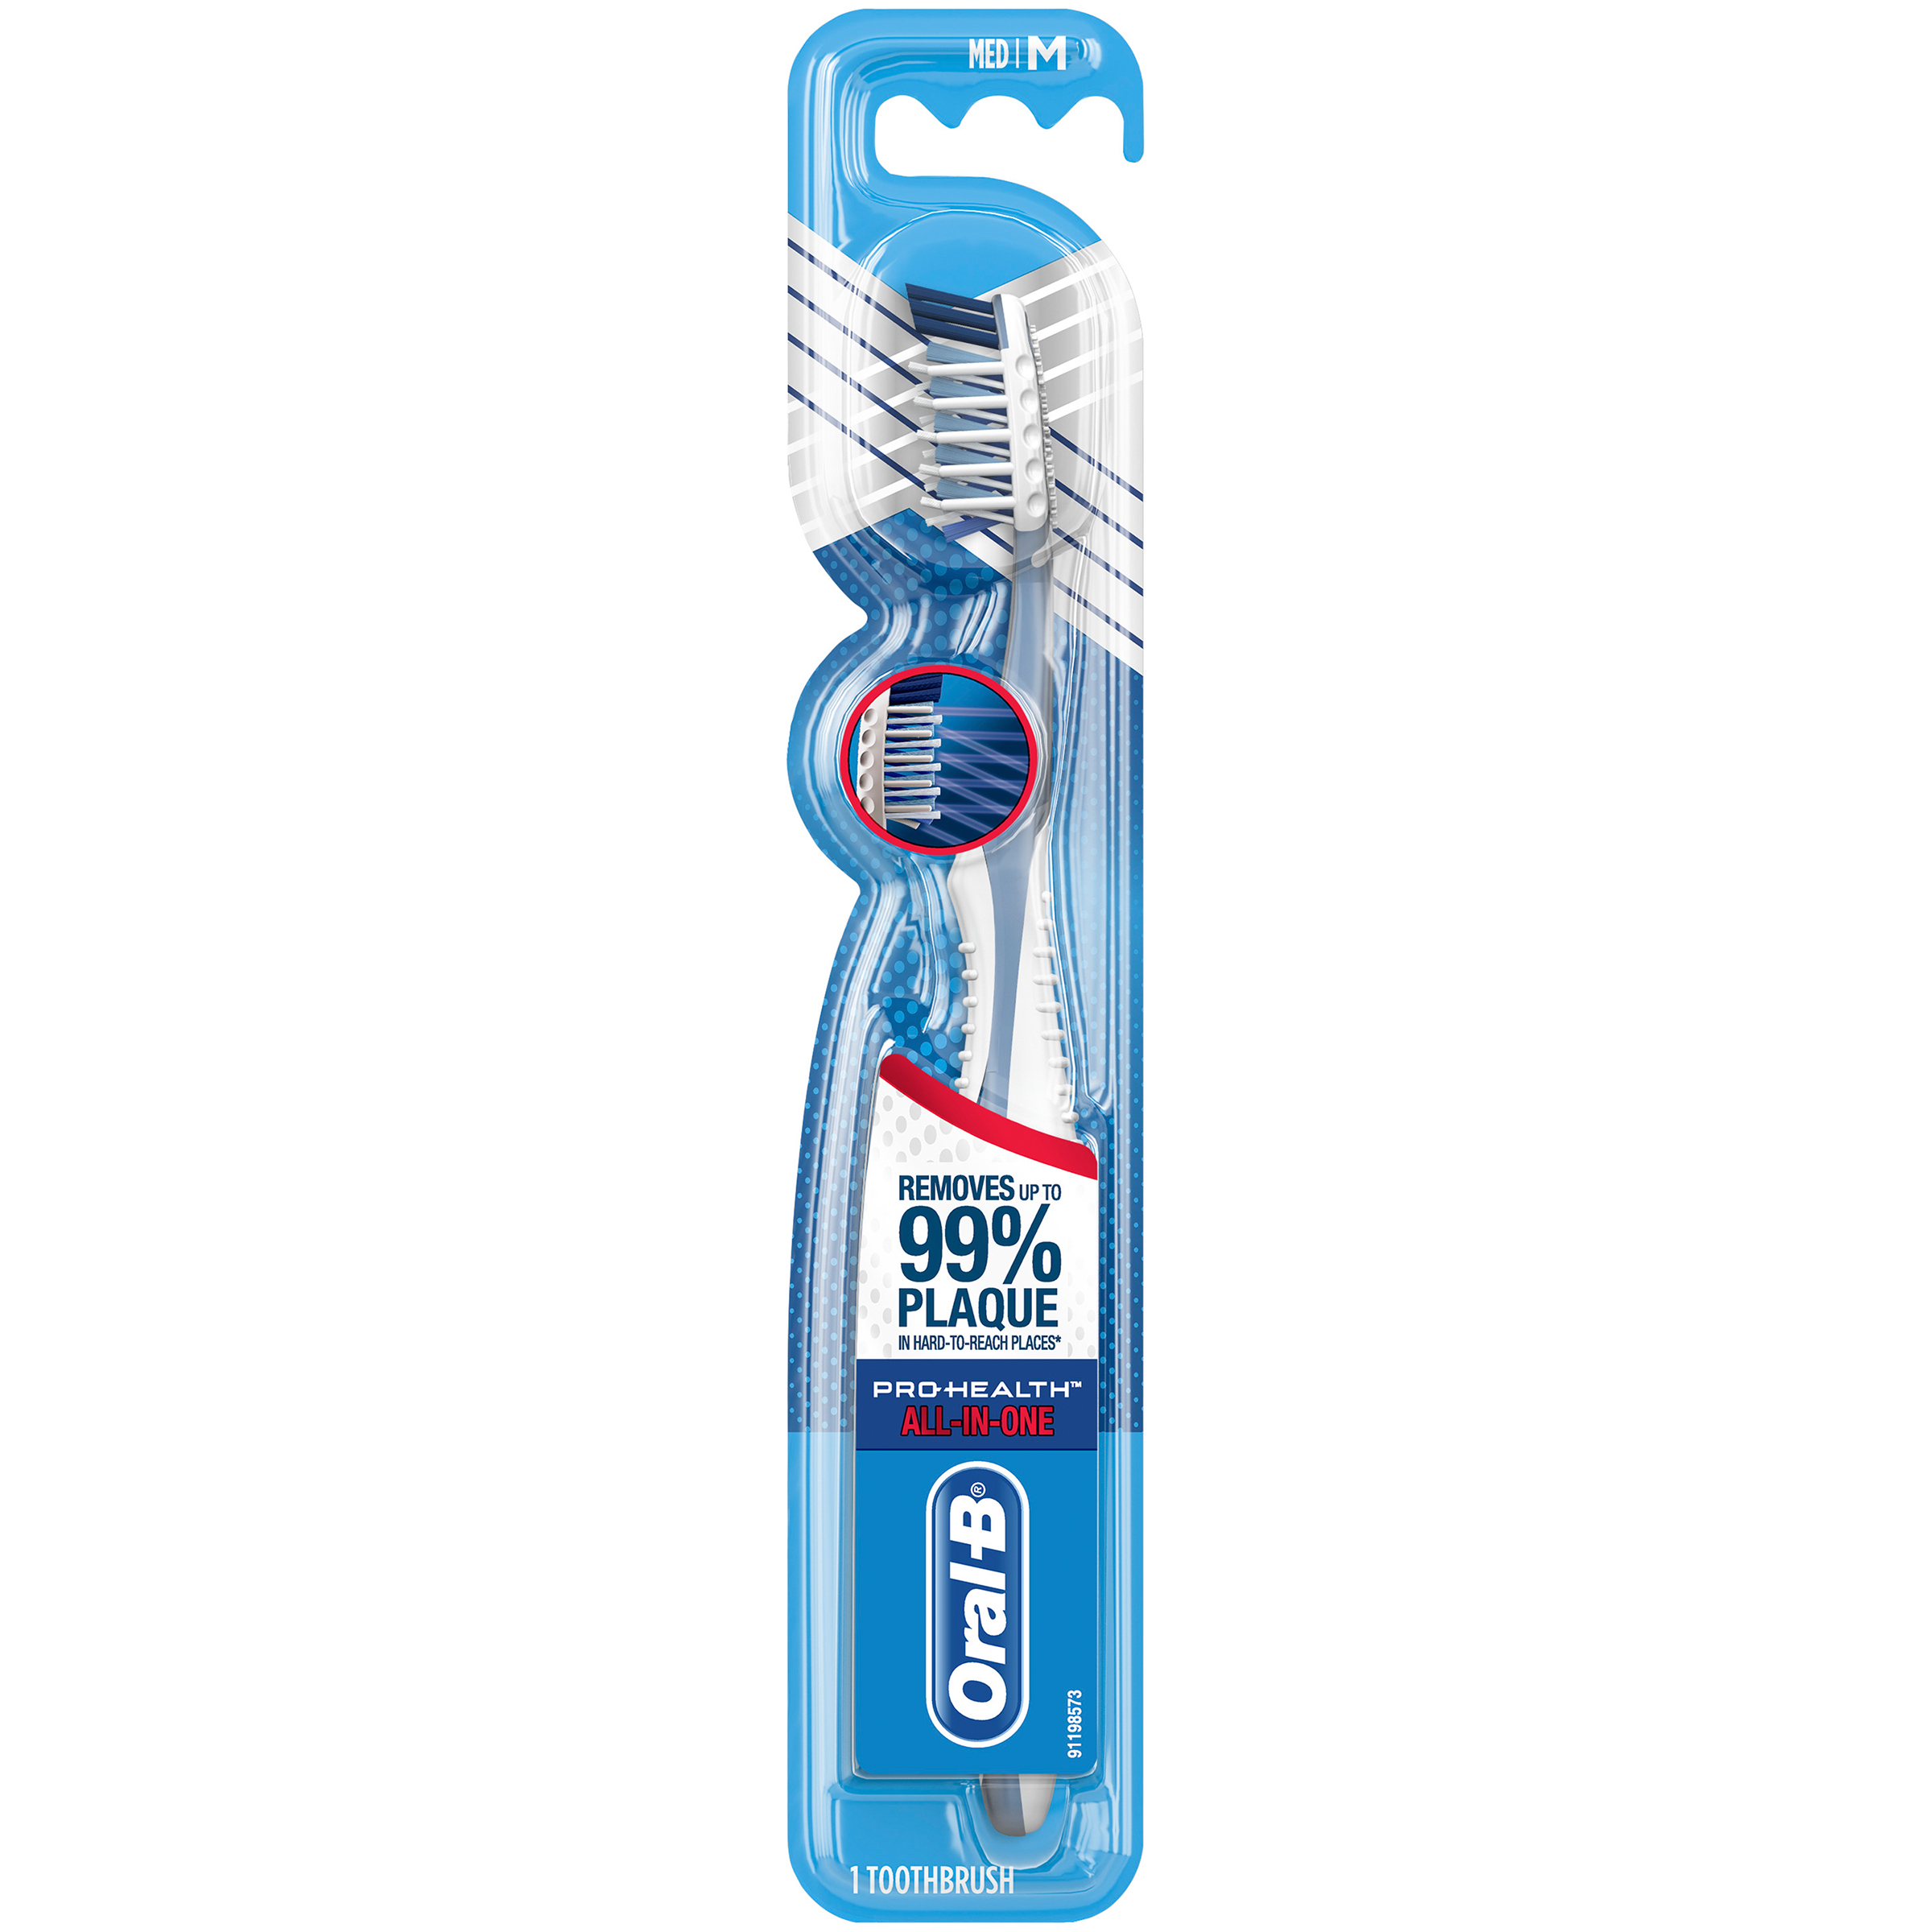 Oral-B Pro-Health All-in-One Manual Toothbrush, Medium, 1 ct